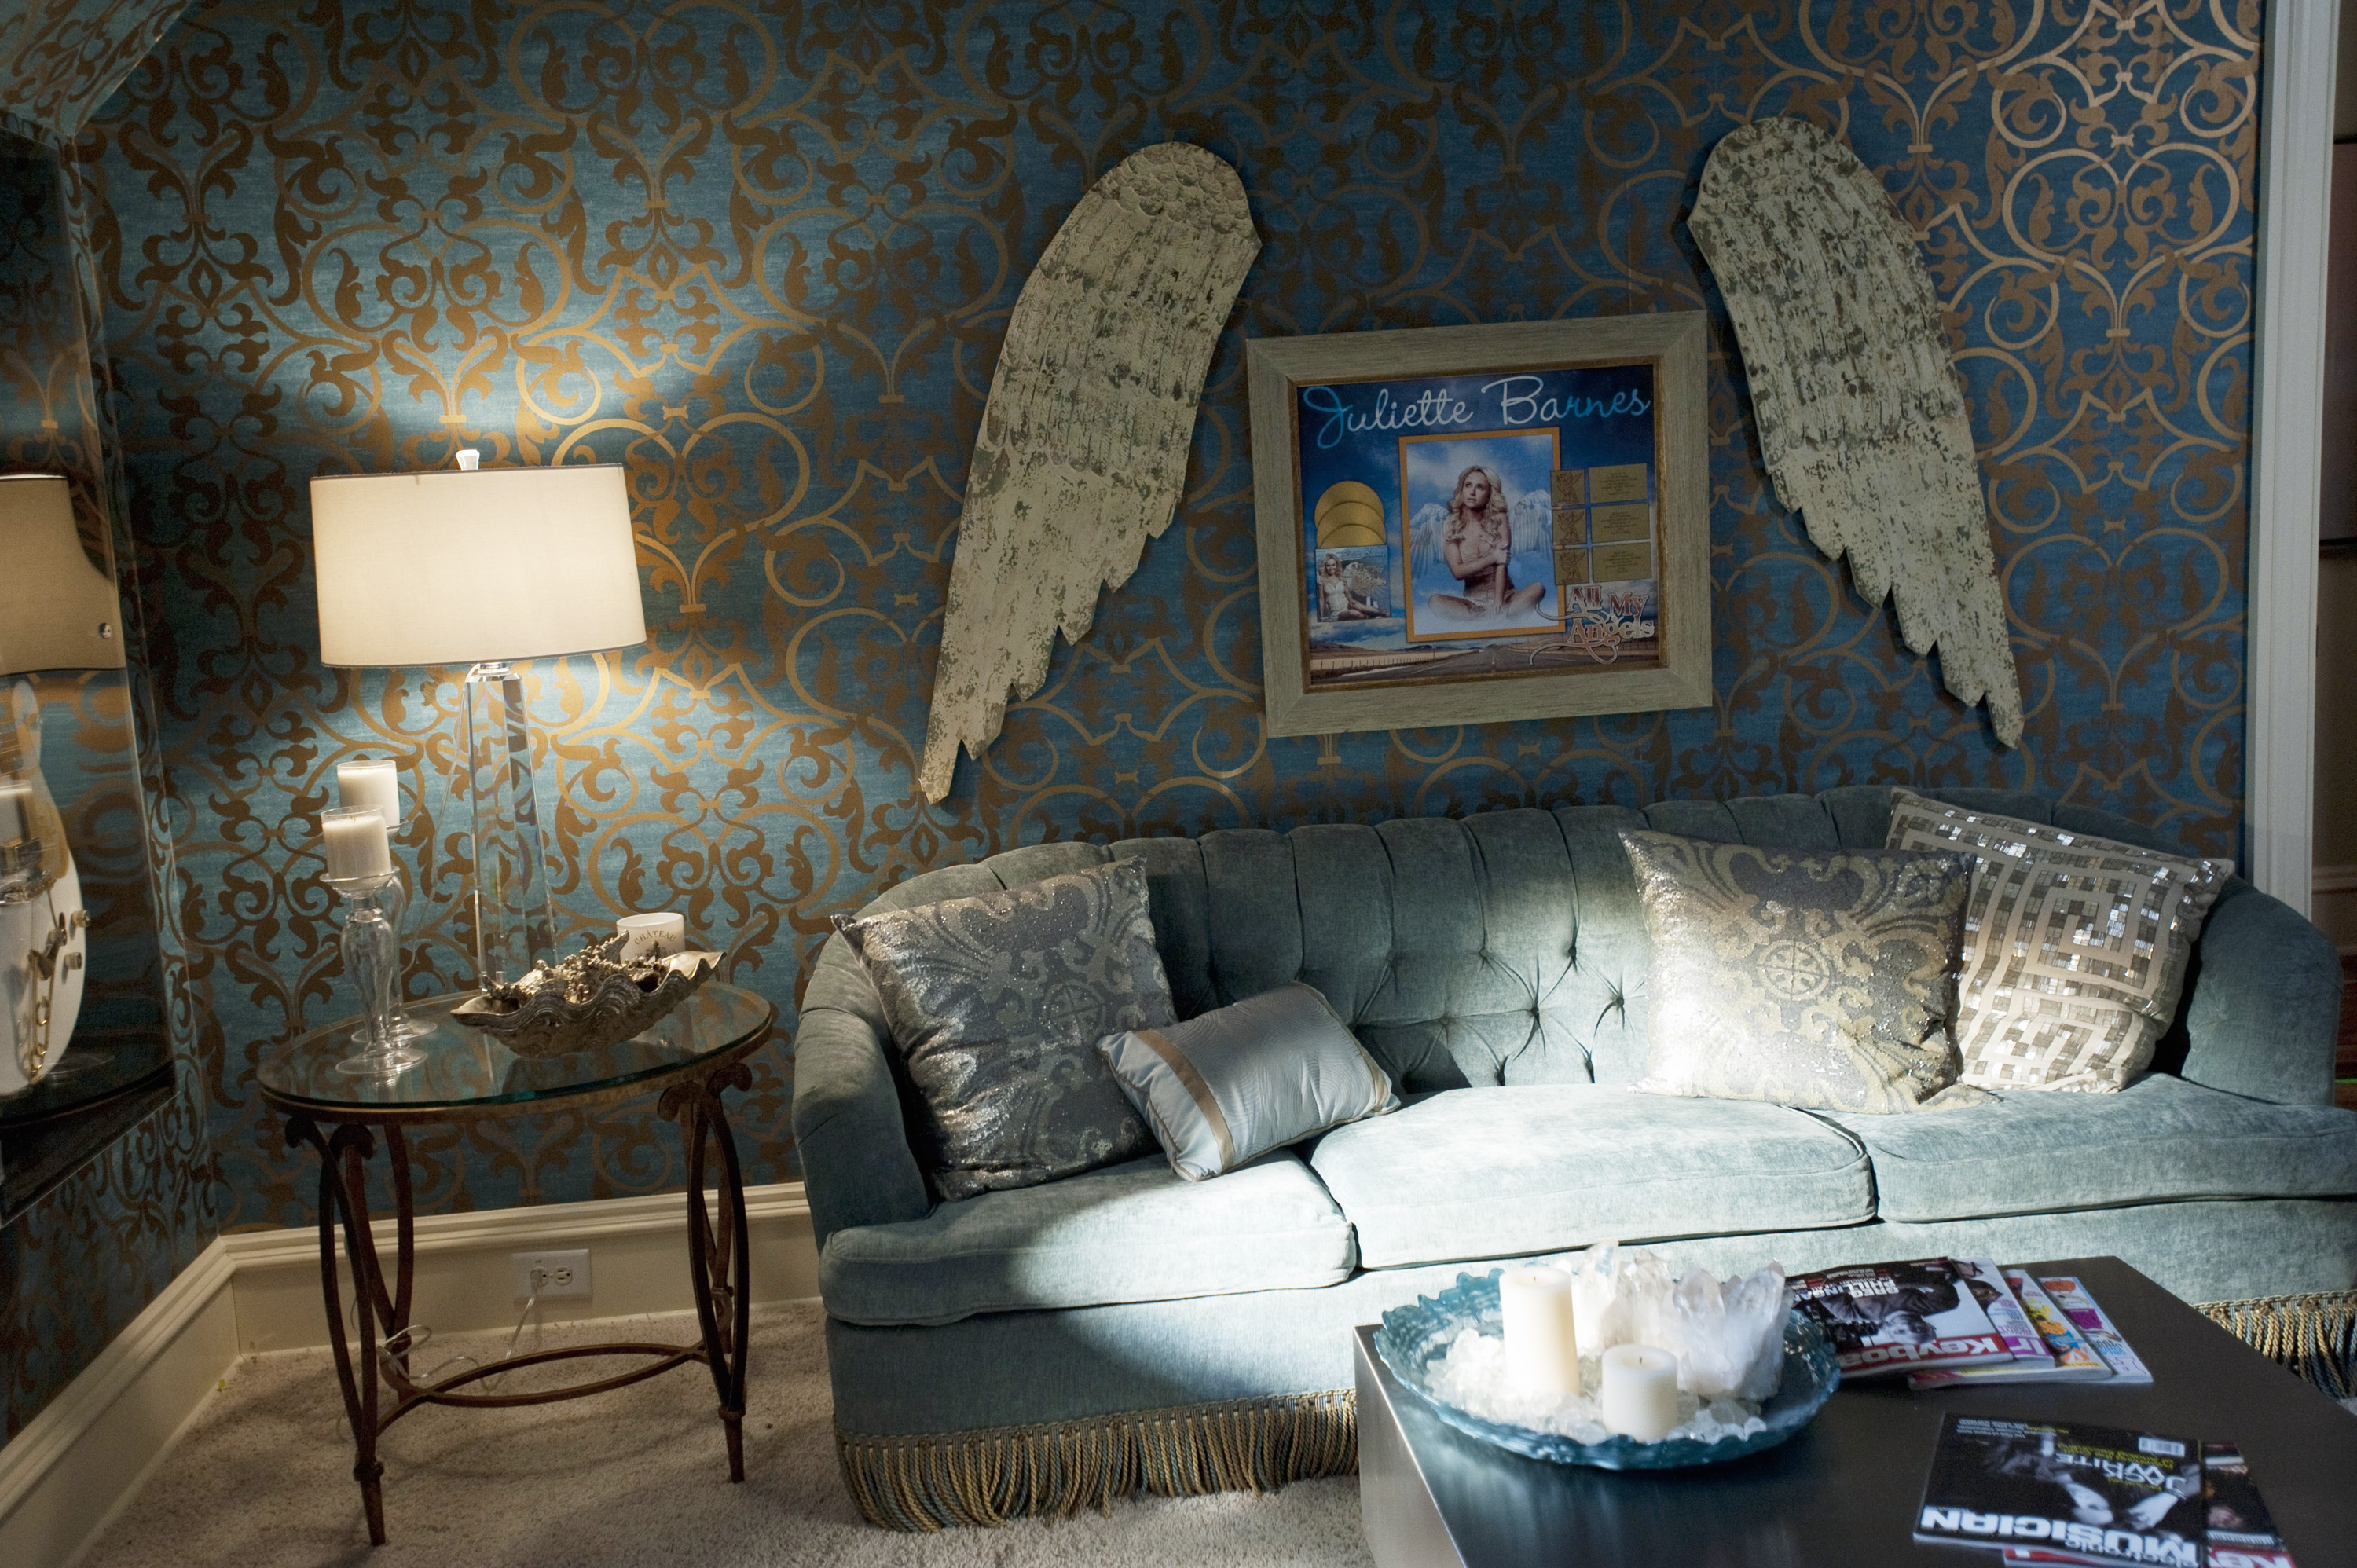 Nashville's Juliette's swanky living room